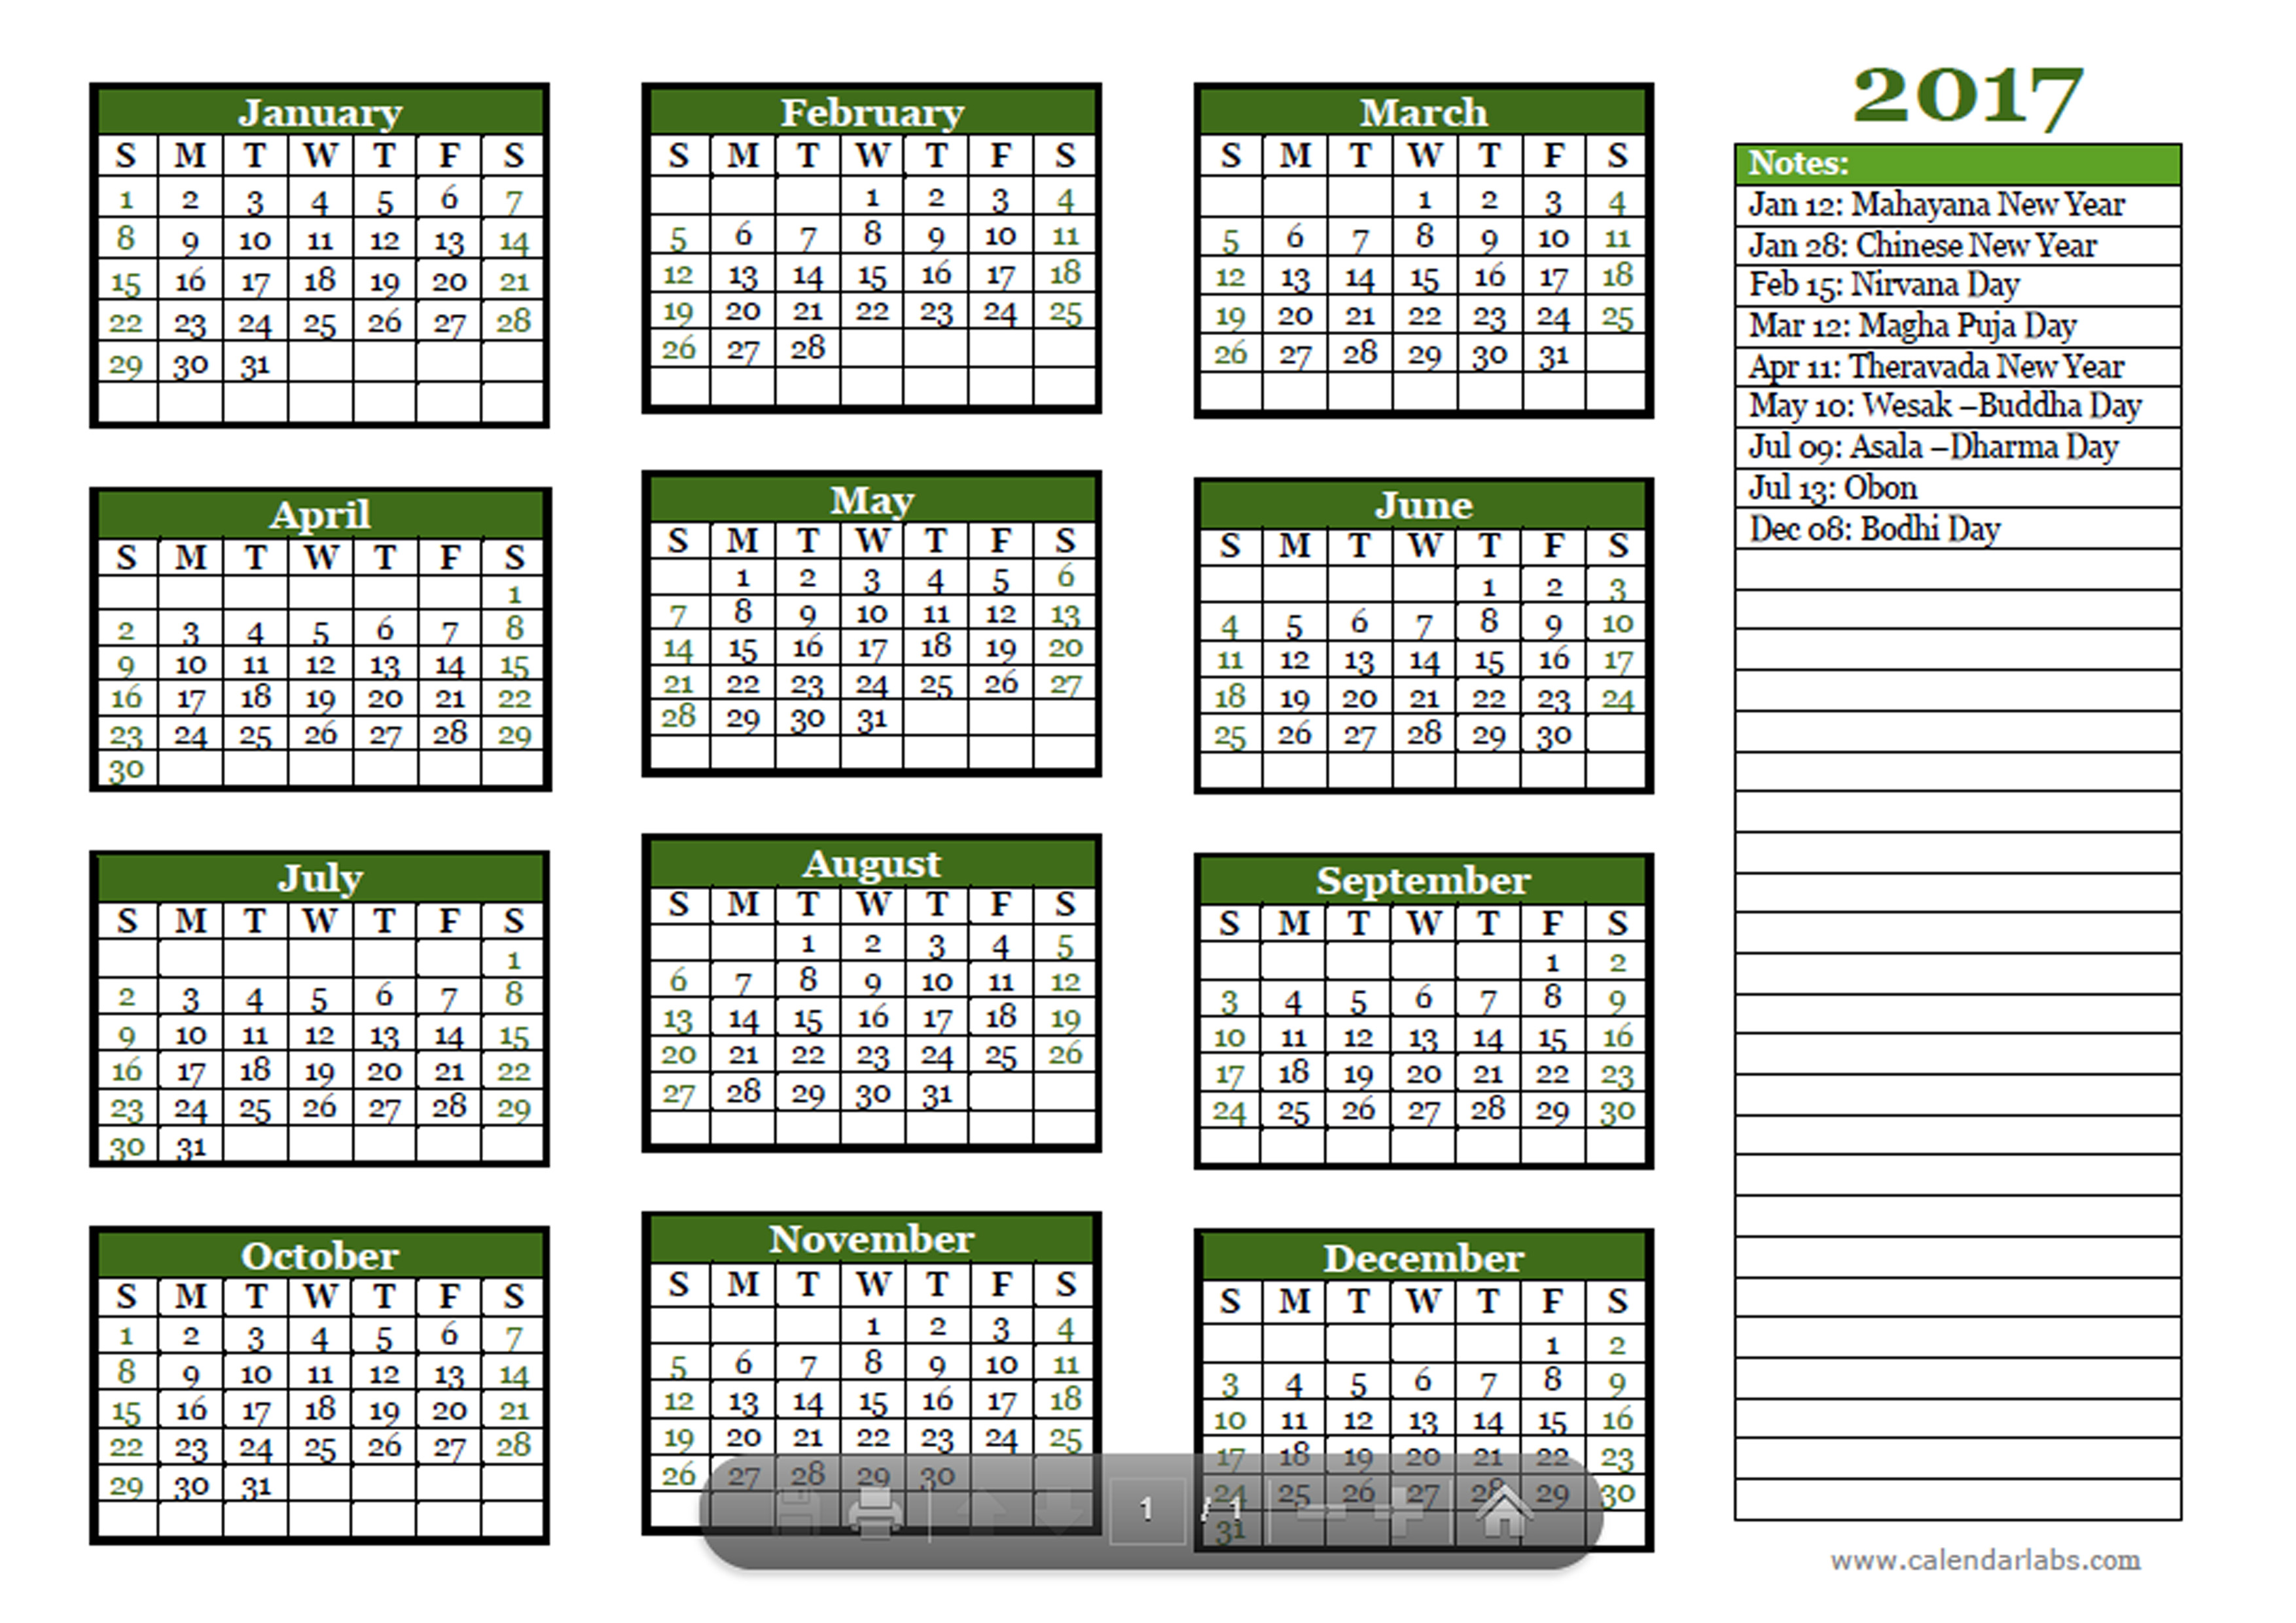 Custom Calendar Excel Template How To Quickly Create A Custom Excel Template To Save Time 2017 Buddhist Festivals Calendar Template Free Printable